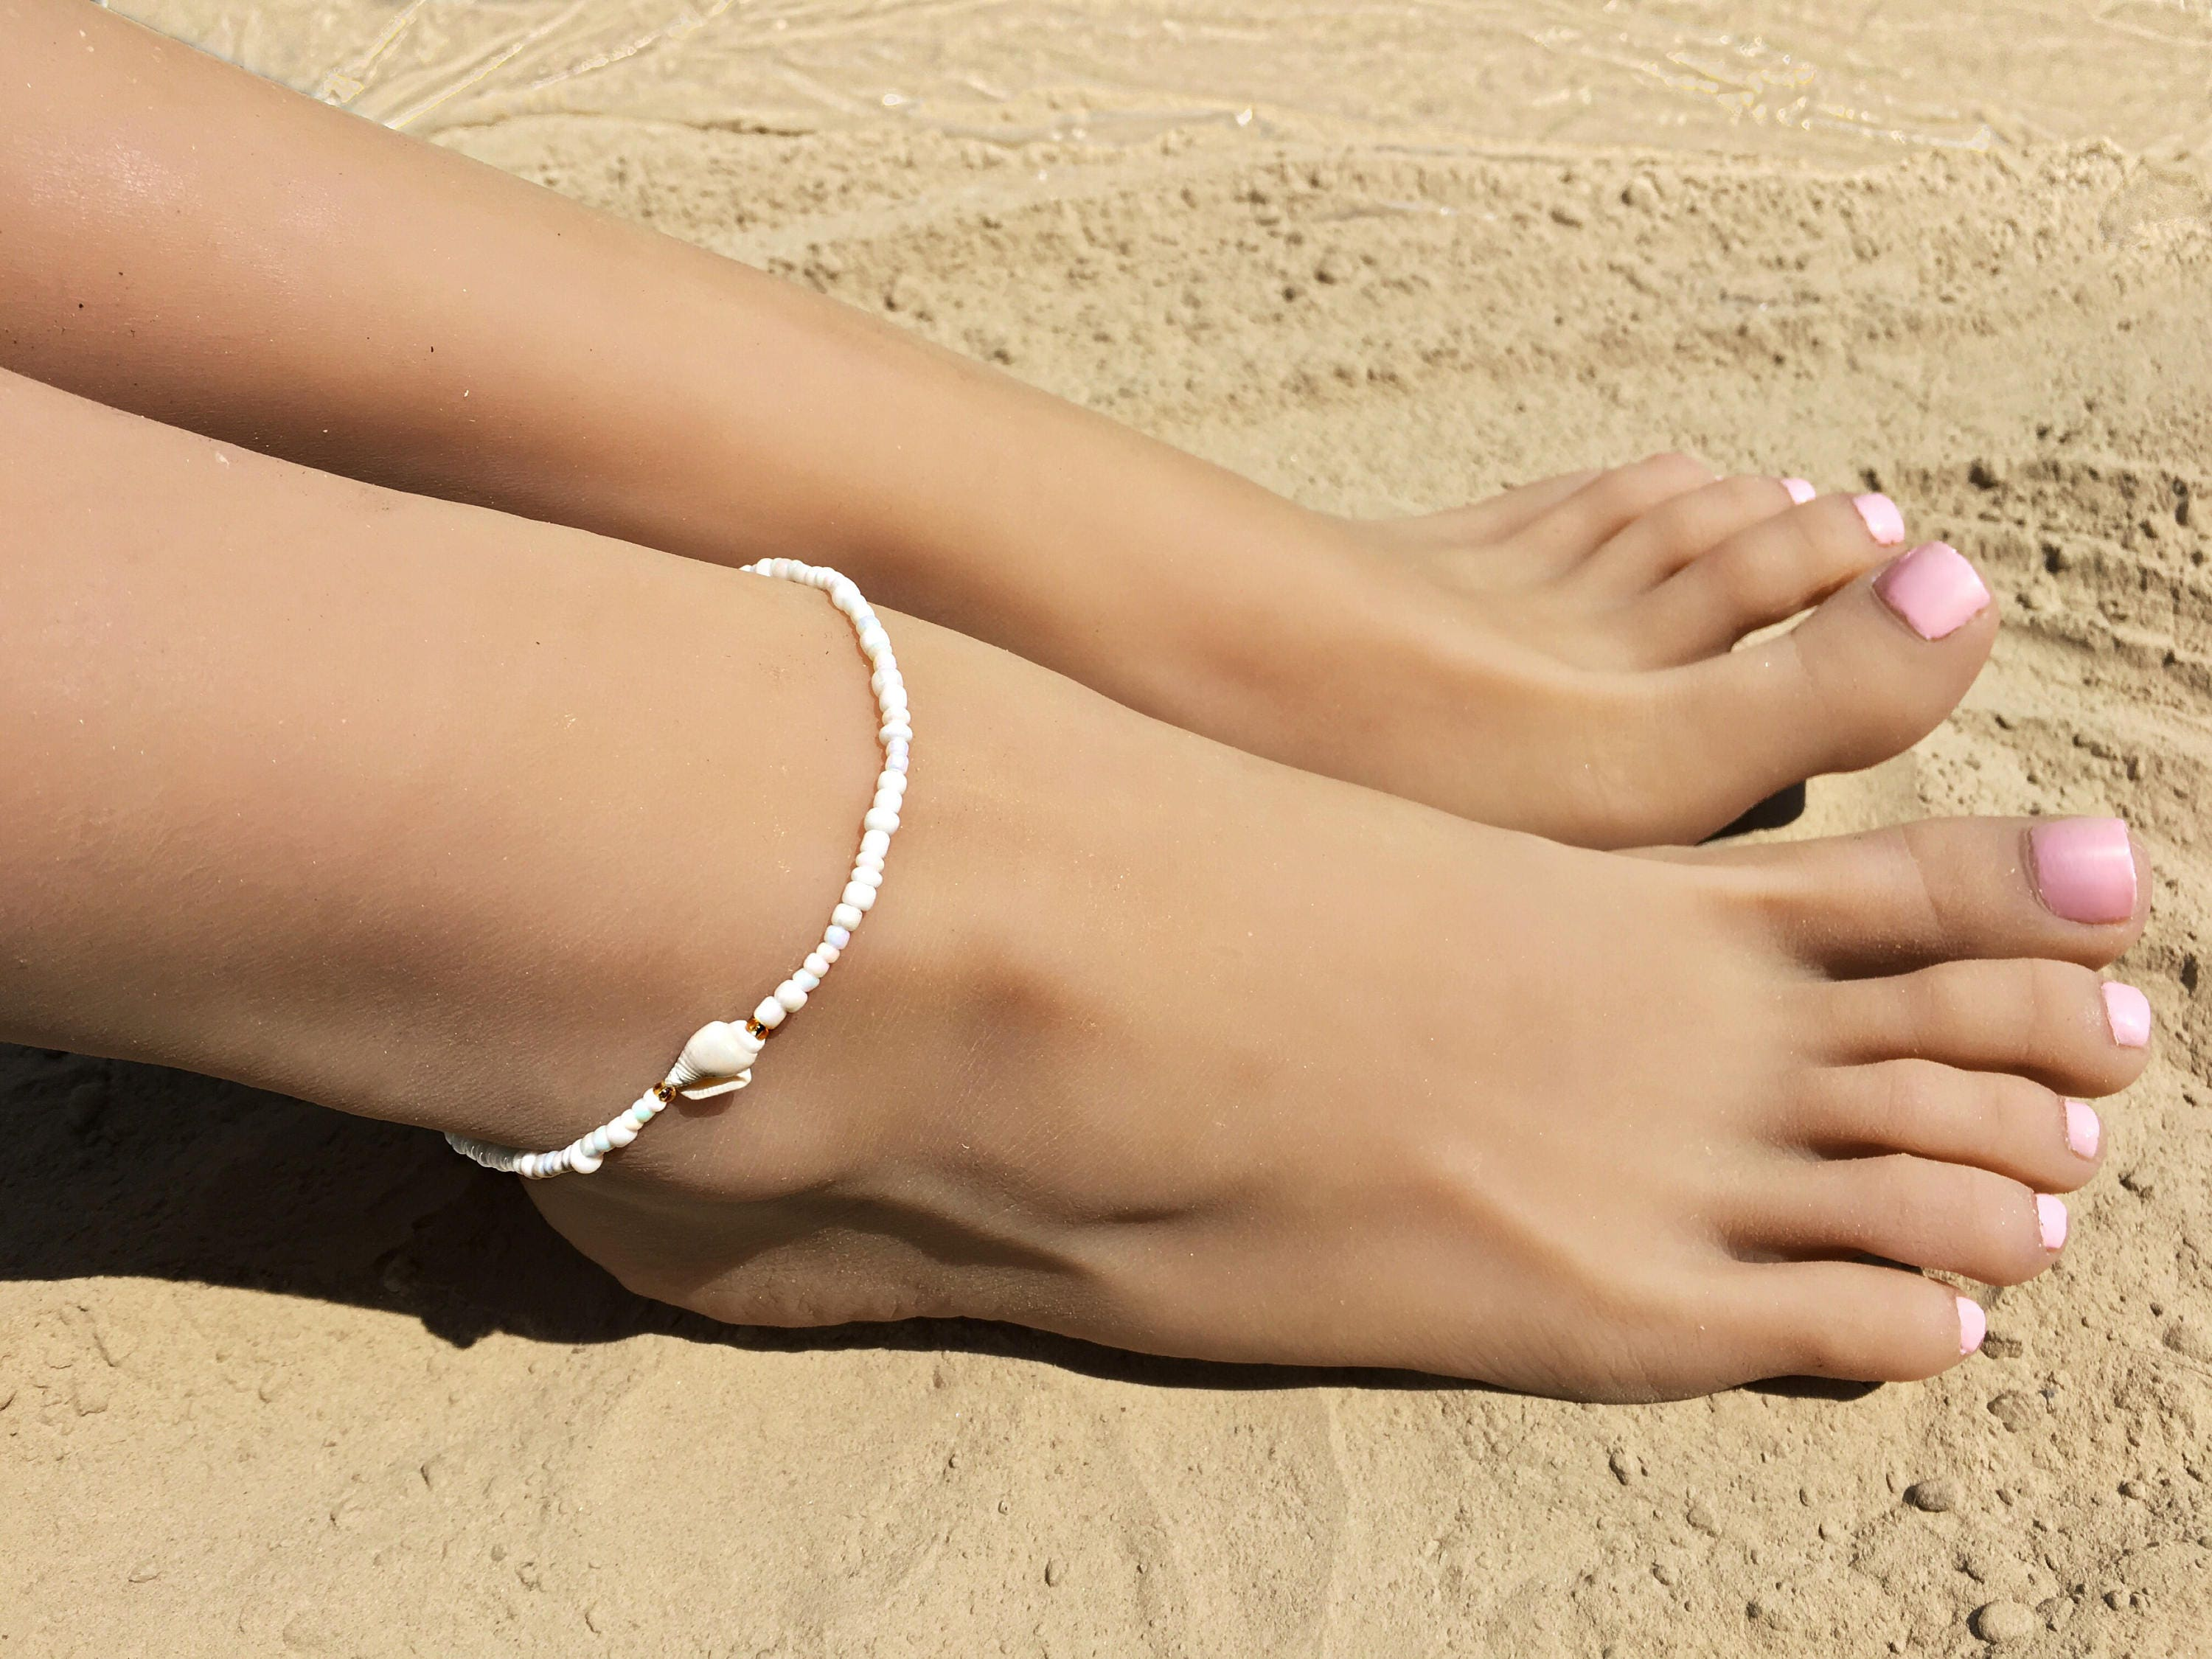 bracelets jewellery anklet oblacoder silver patterns gold sandals women foot chain elegant beaded anklets womens bracelet for cheville ankle barefoot chaine